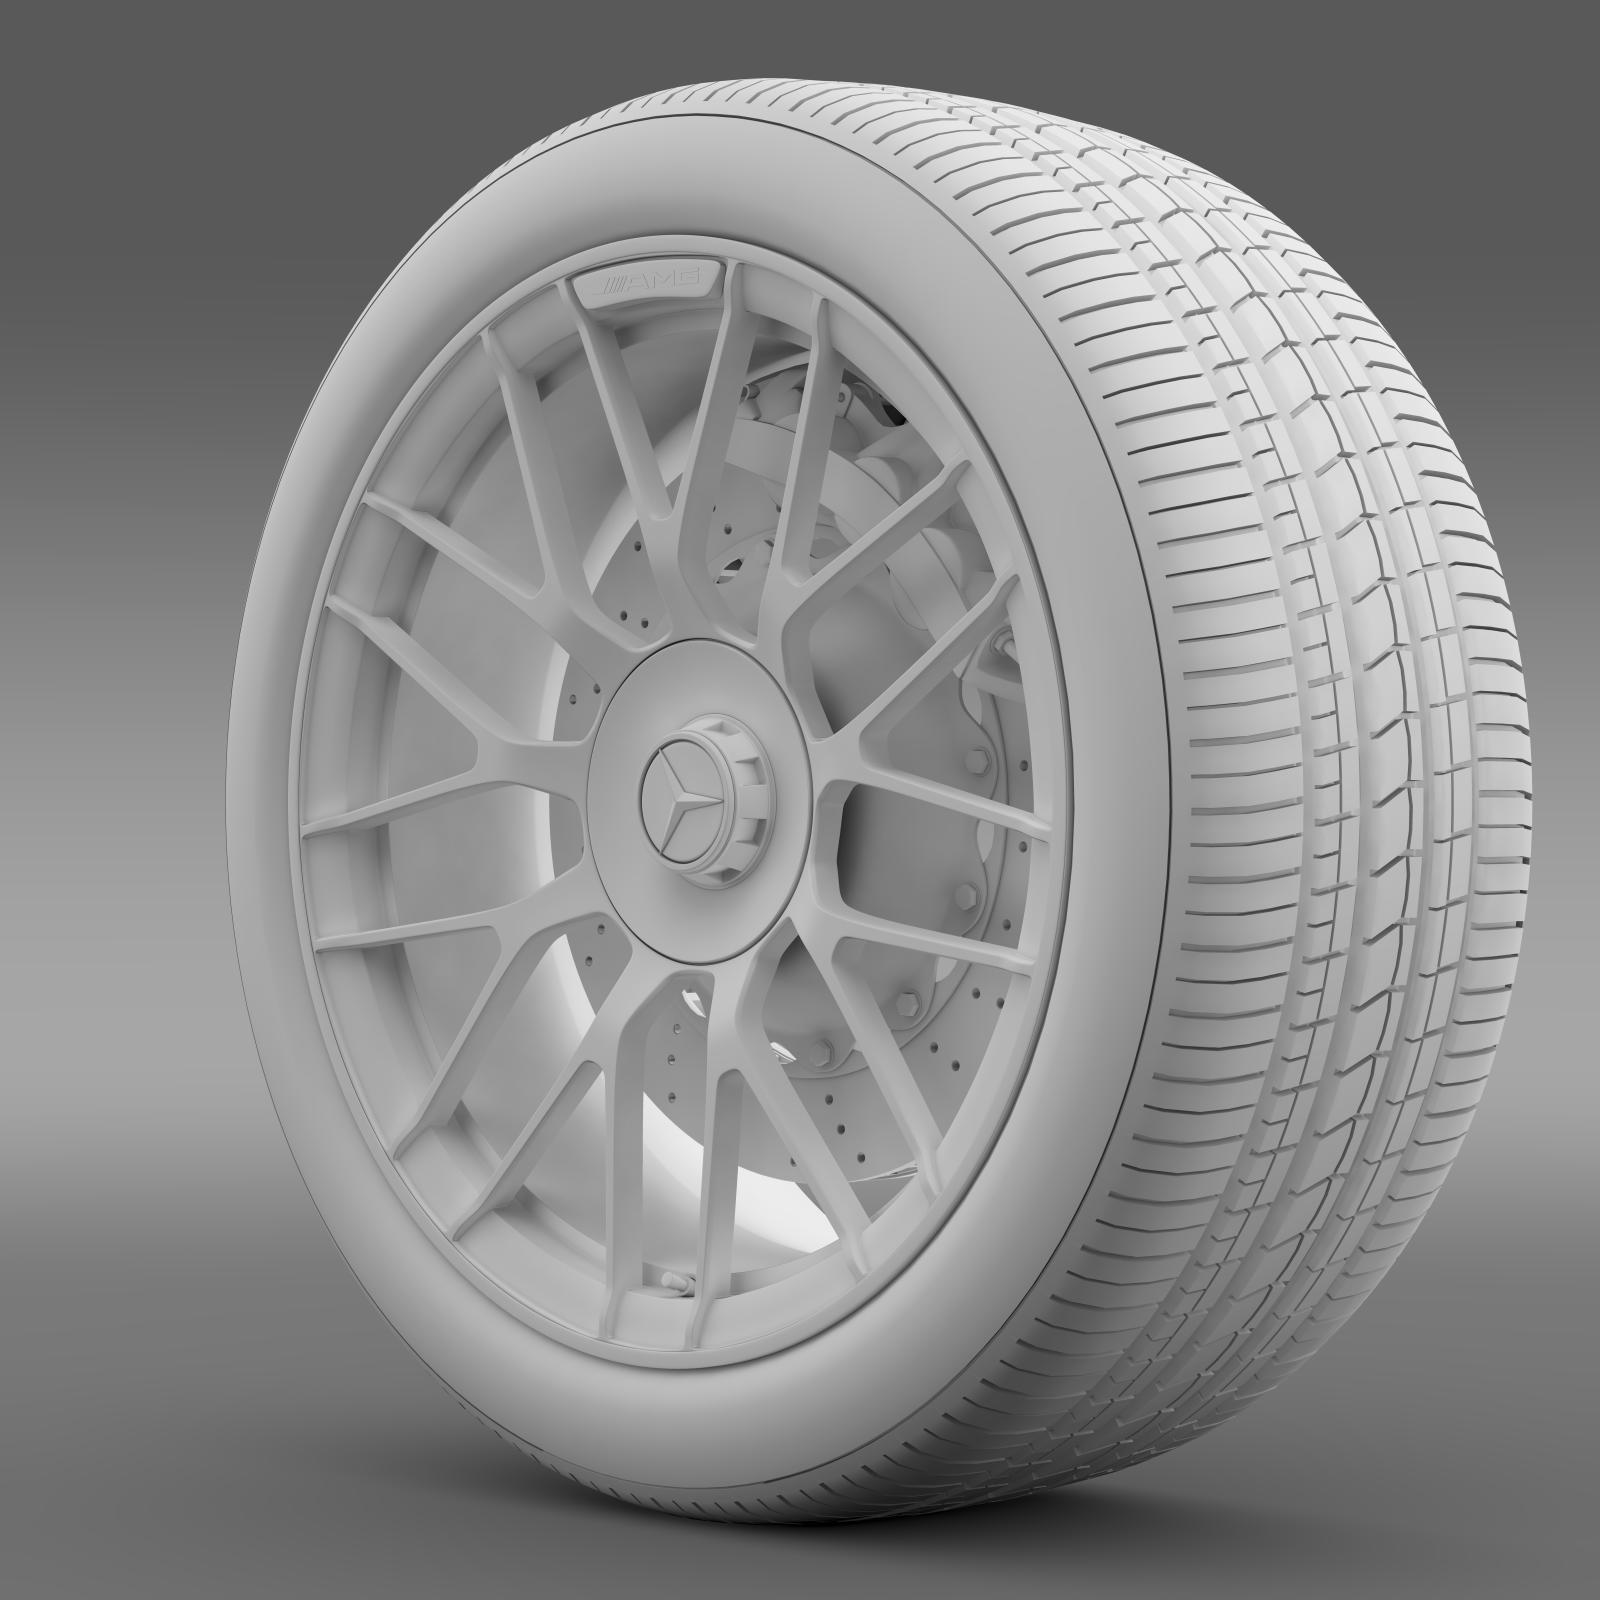 mercedes amg c 63 s edition wheel 3d model 3ds max fbx c4d lwo ma mb hrc xsi obj 210748